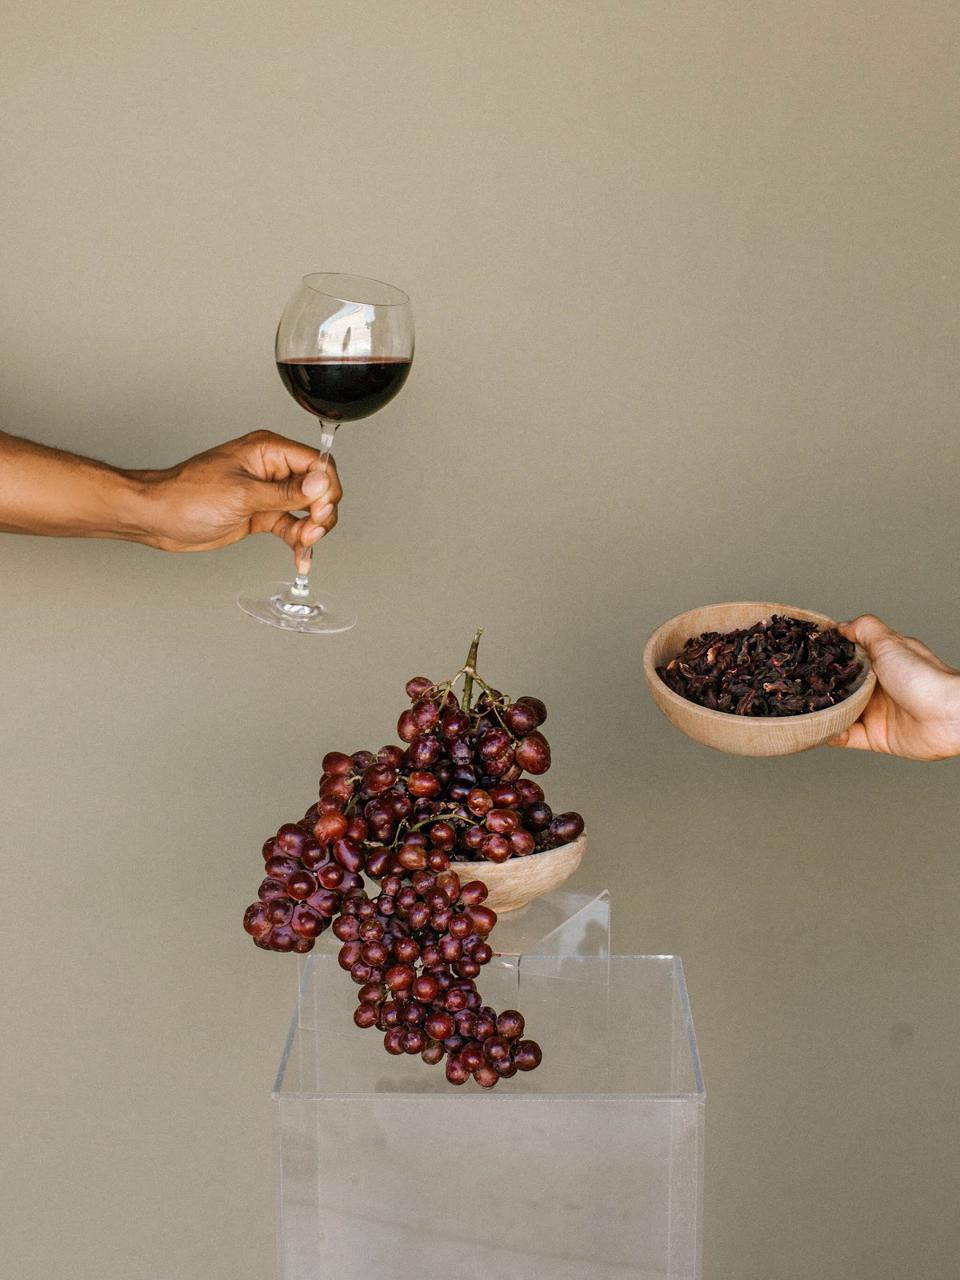 A wine glass, red grapes, and herbs.